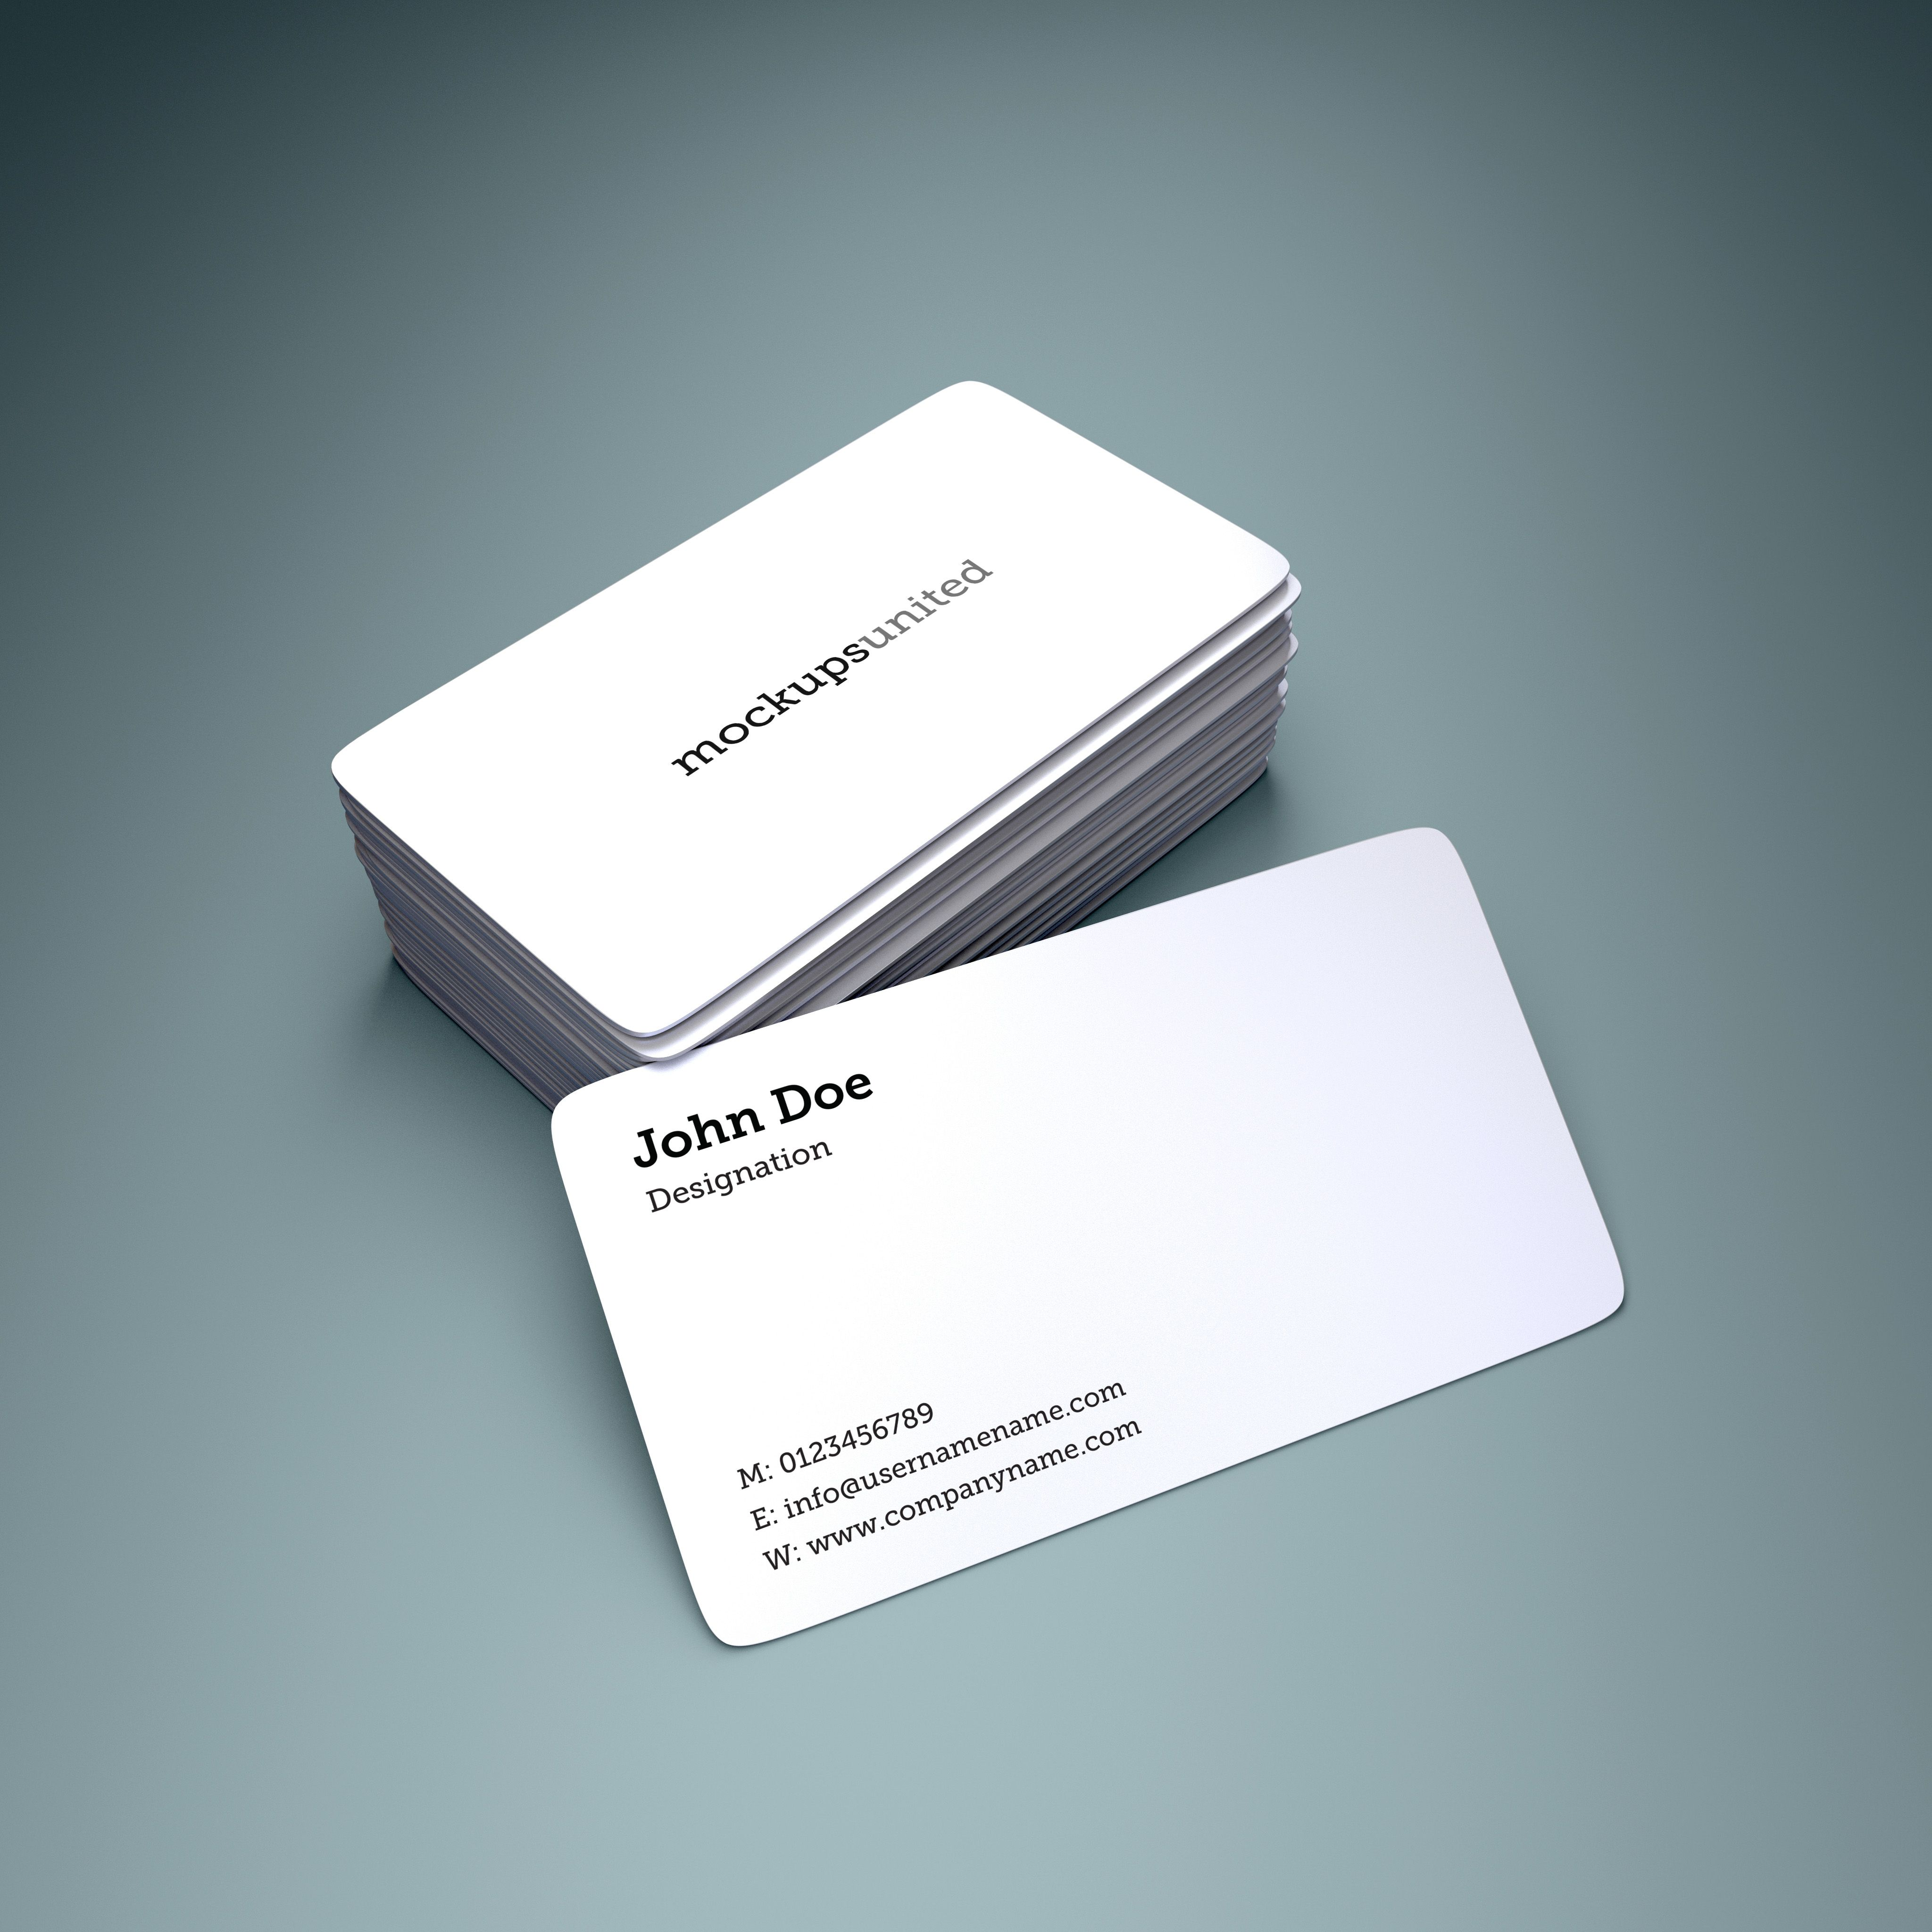 Rounded Corner Business Card Mockup Business Card Mock Up Business Cards Mockup